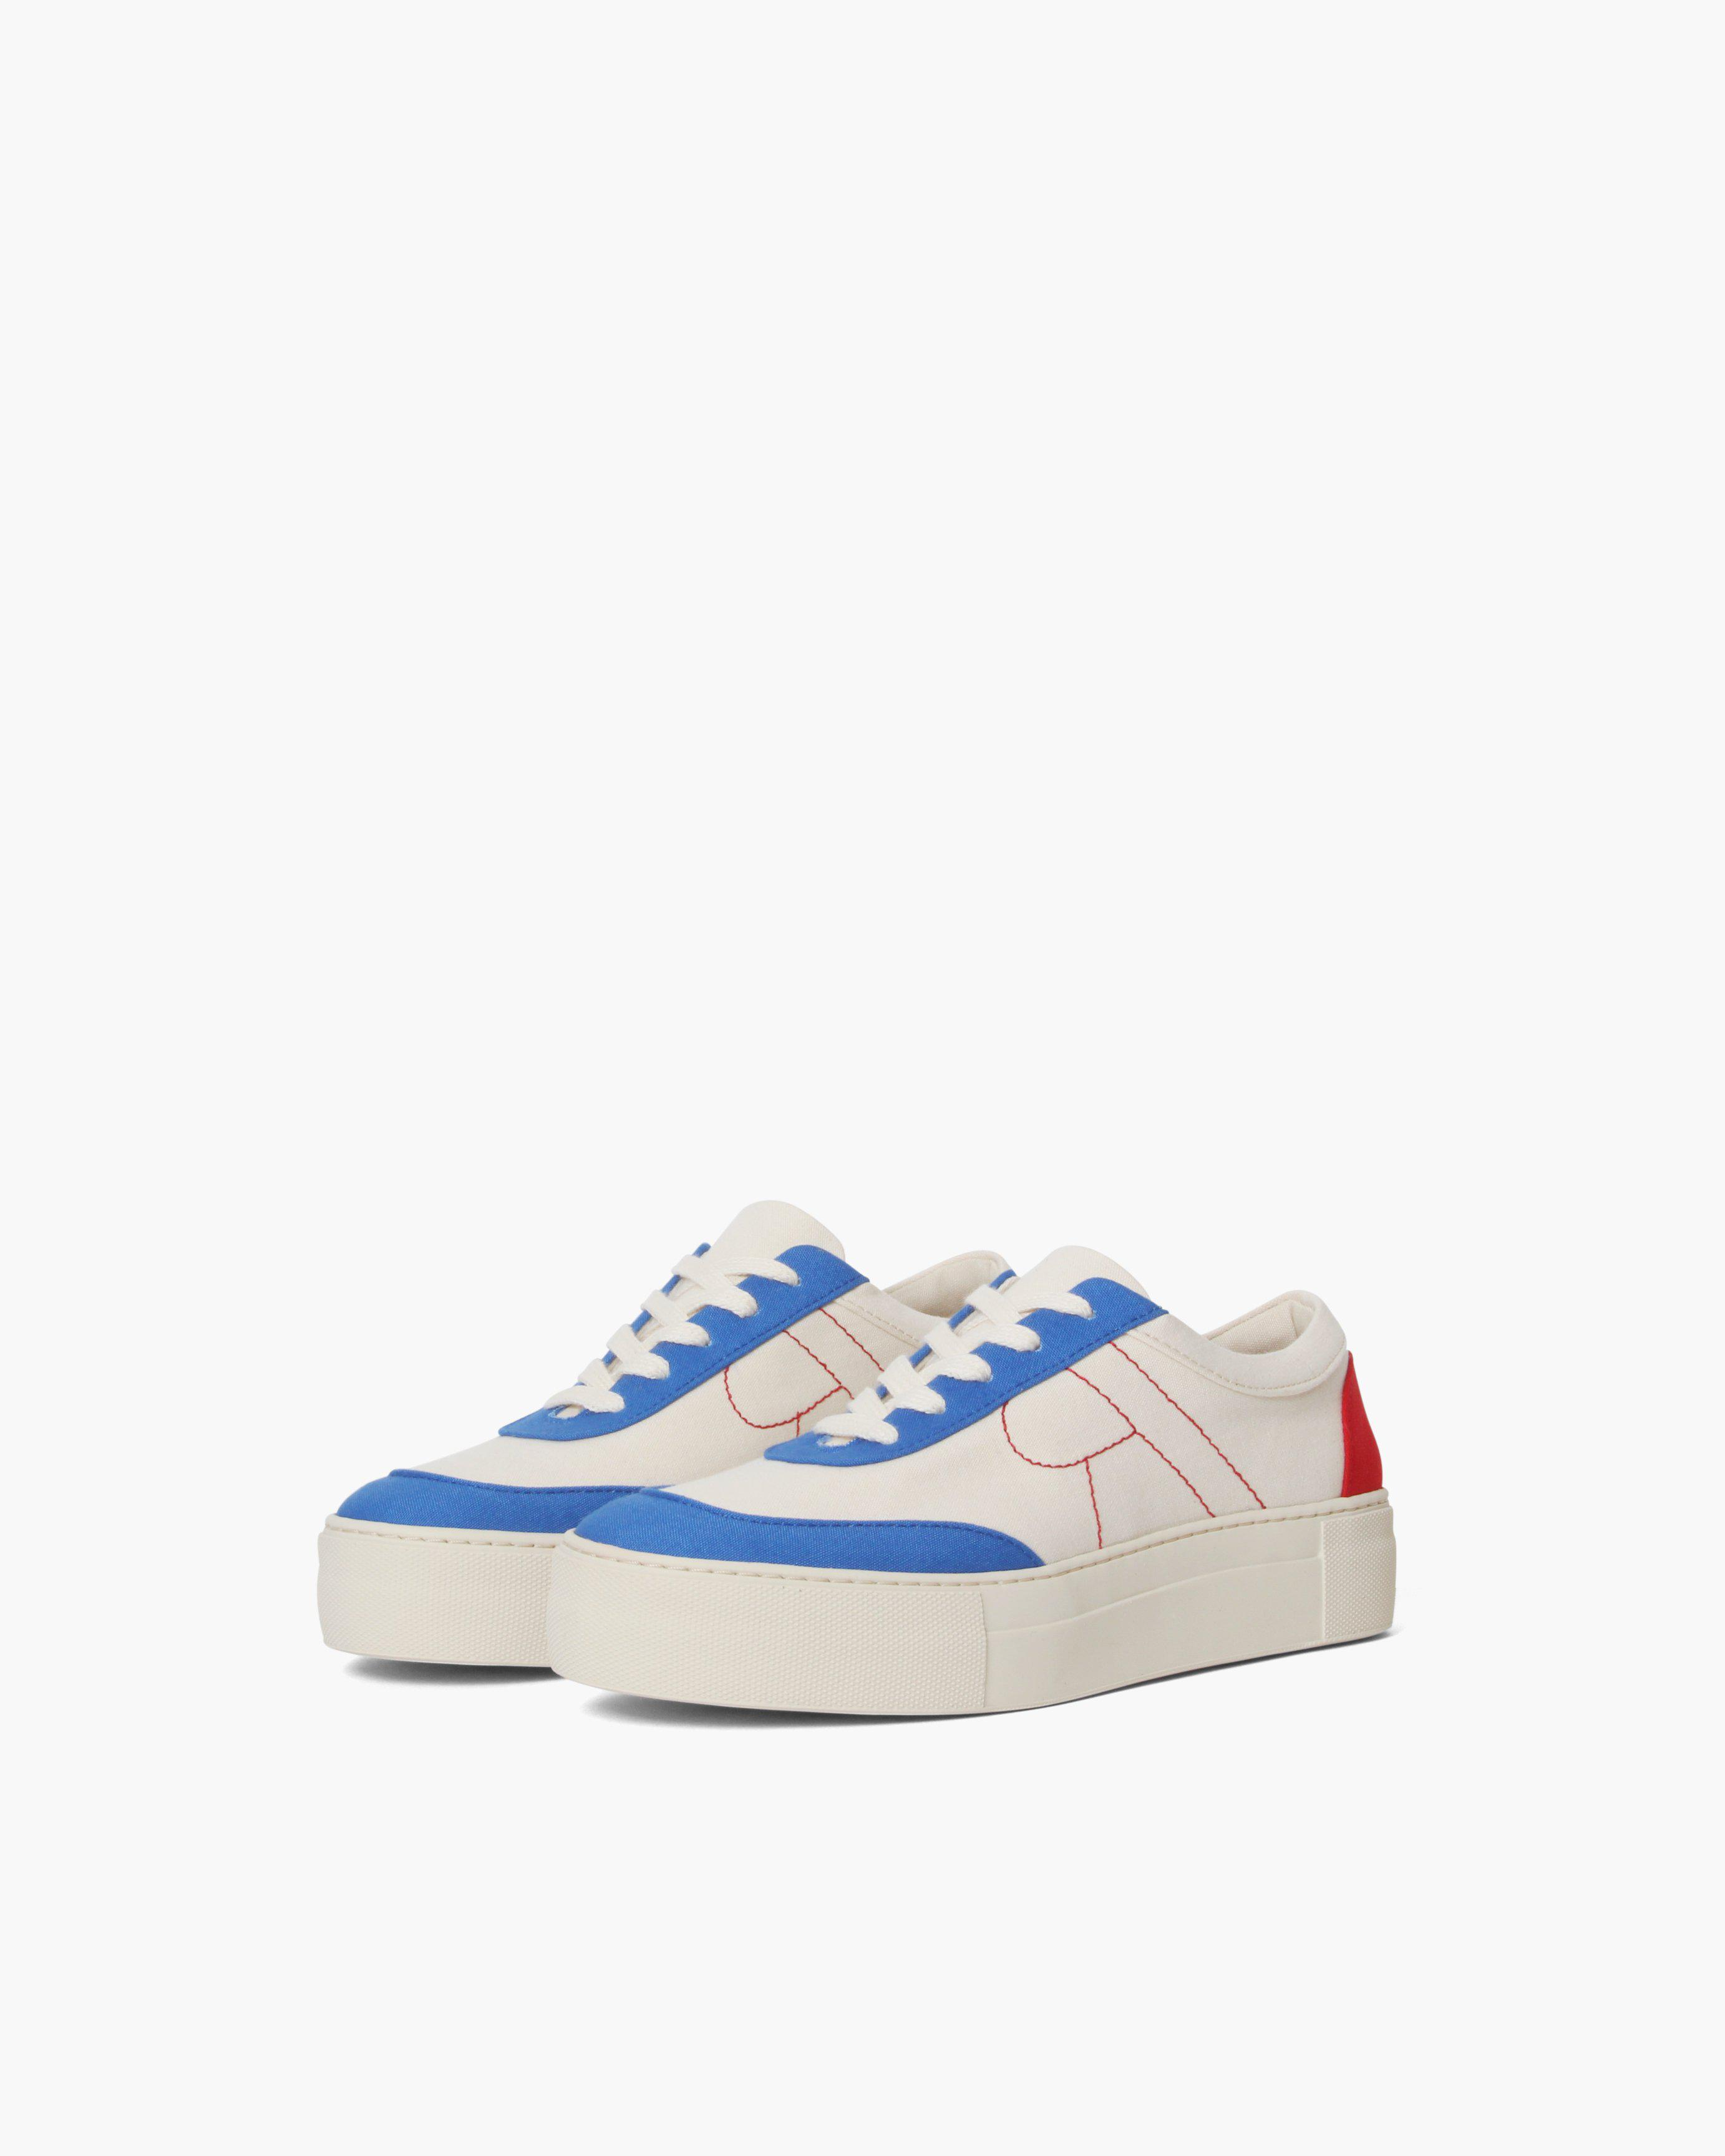 Bailey Sneakers Cotton Canvas Blue + Red - SALE 1